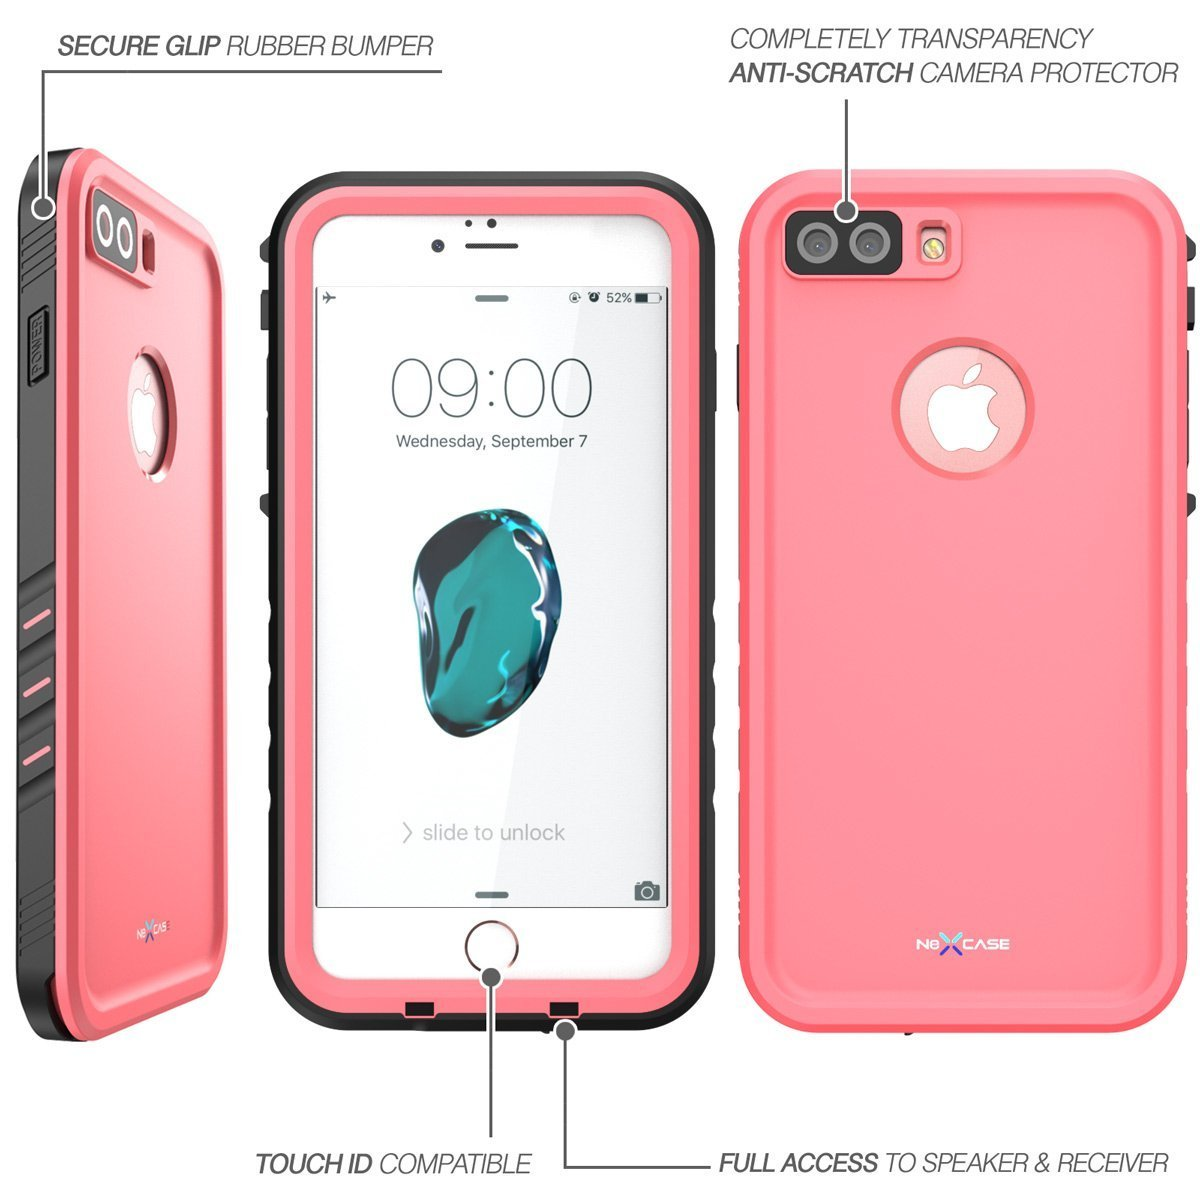 iPhone 7 Plus Case, NexCase Waterproof Full-body Rugged Case with Built-in Screen Protector for Apple iPhone 7 Plus 5.5 inch 2016 Release (Pink) by NexCase (Image #4)